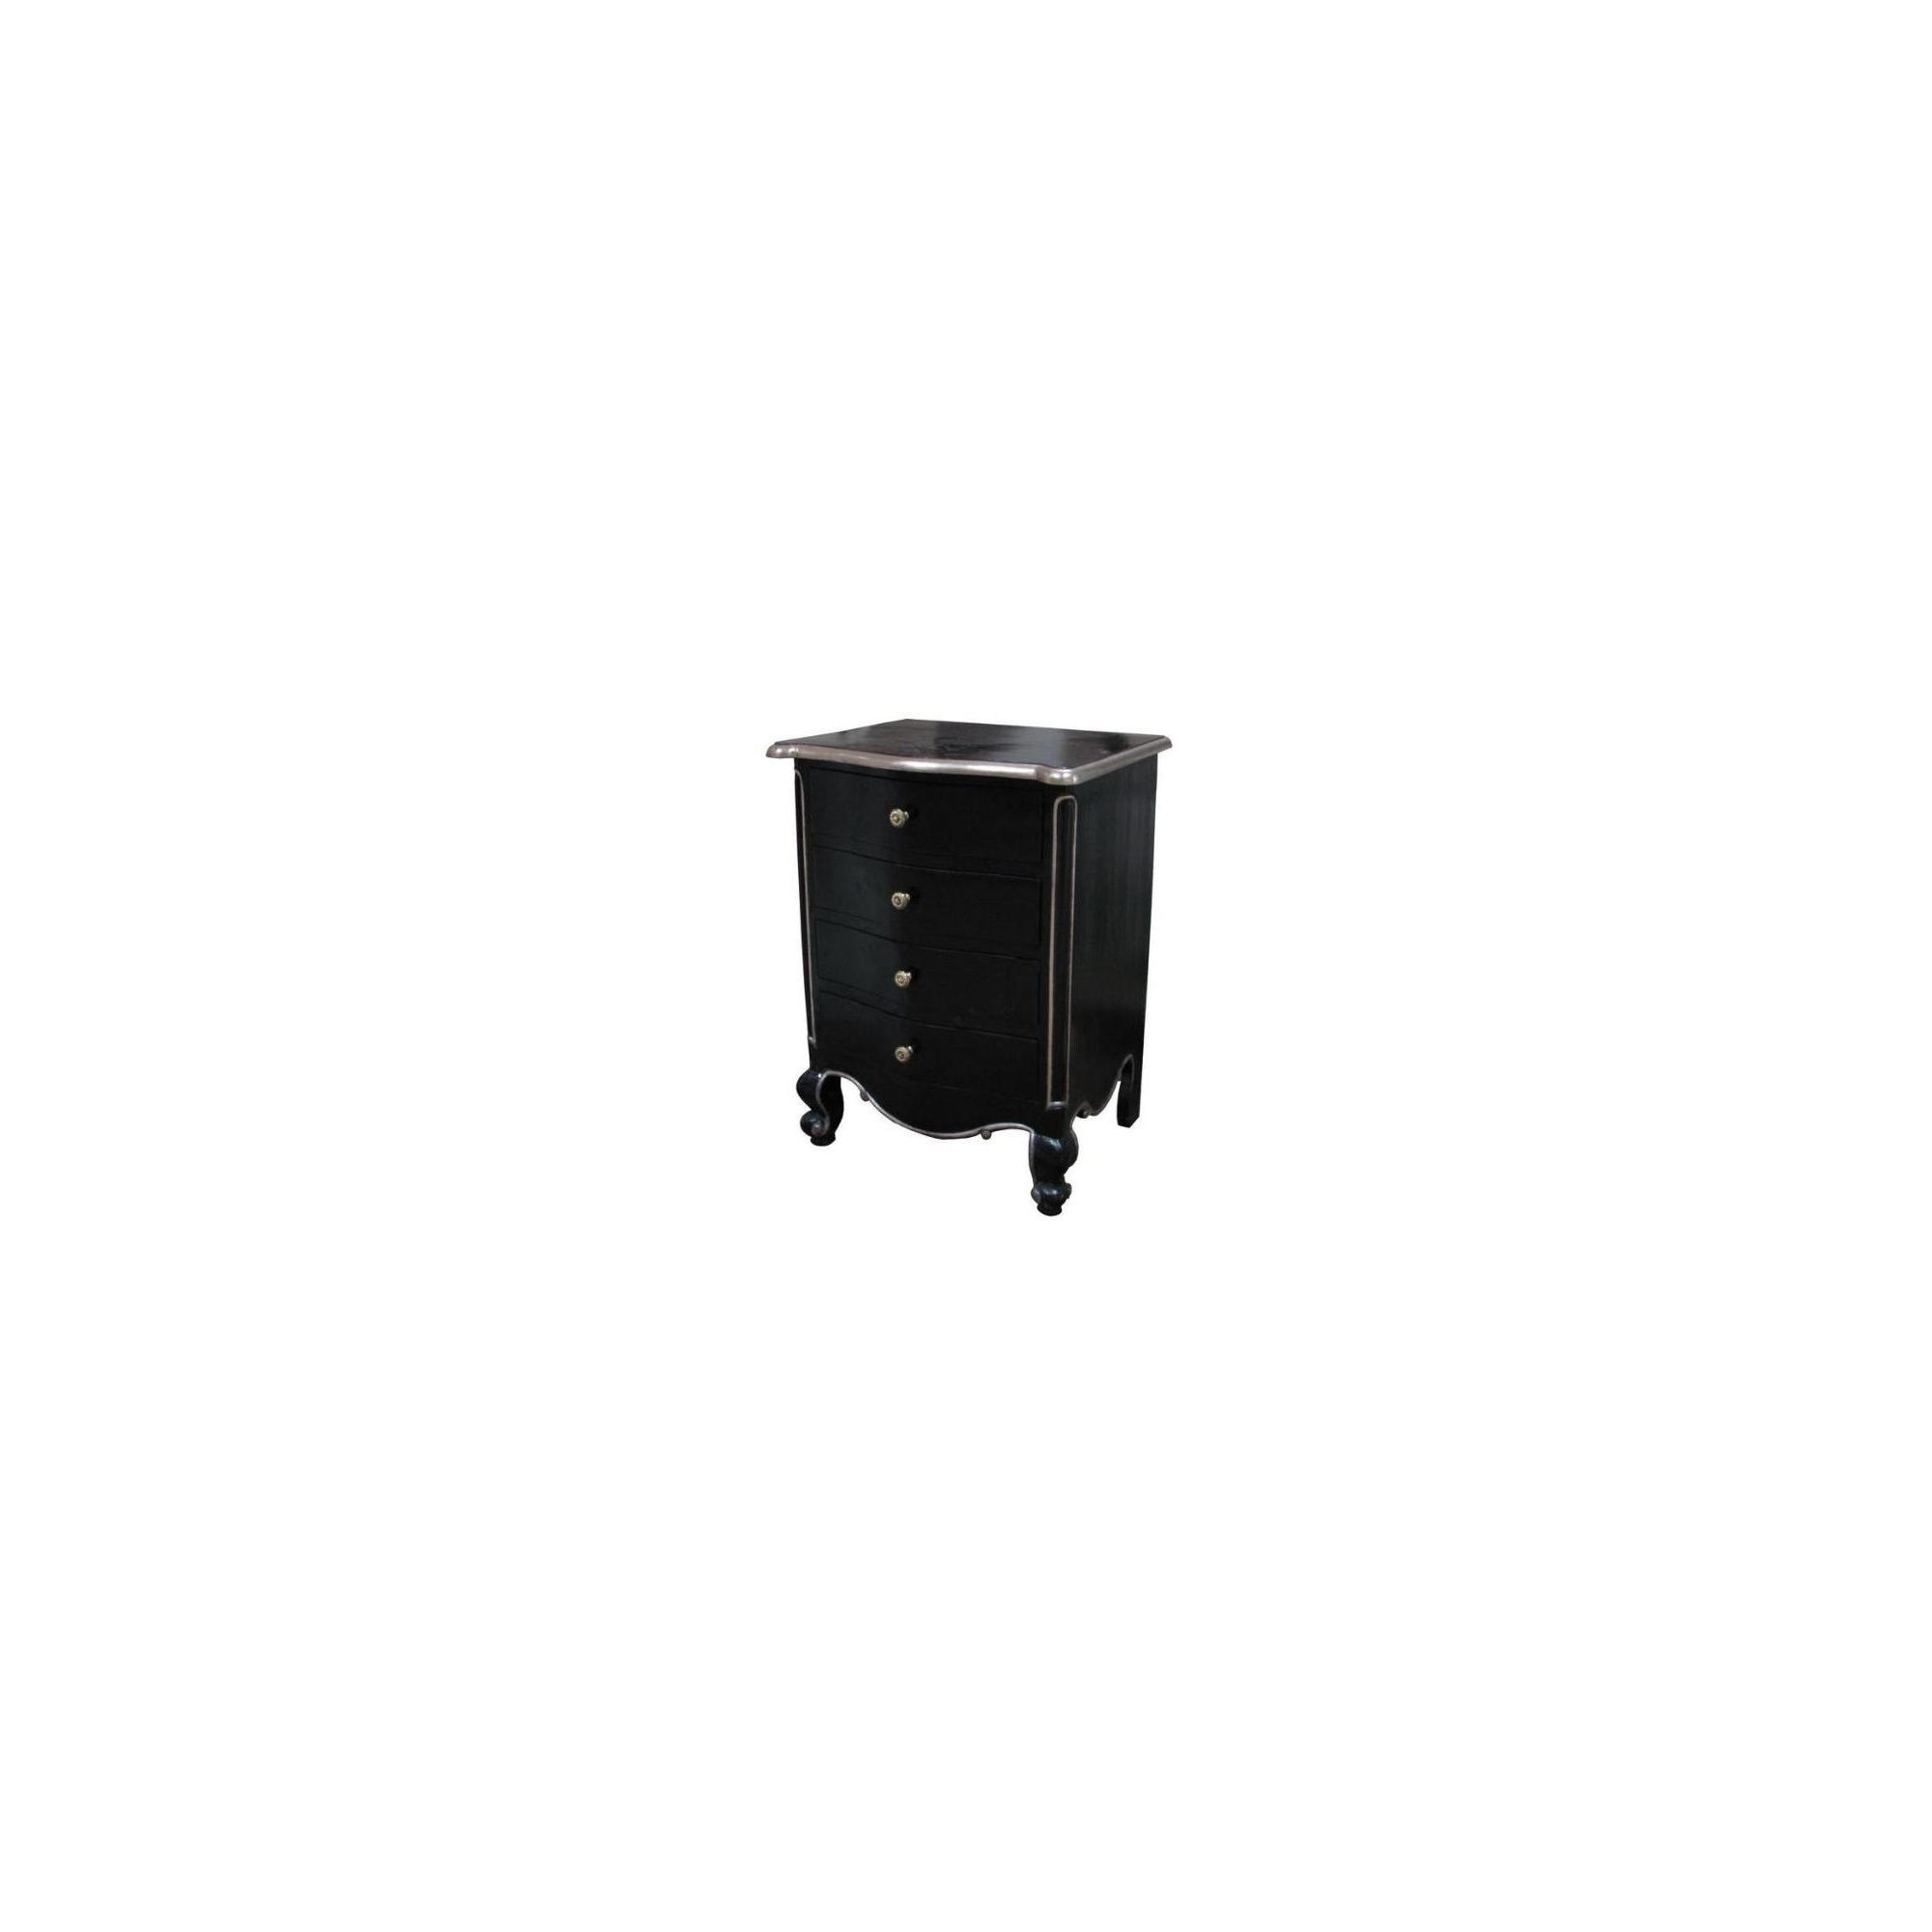 Lock stock and barrel Mahogany Louis 4 Drawer Bedside Table in Mahogany - Black at Tesco Direct